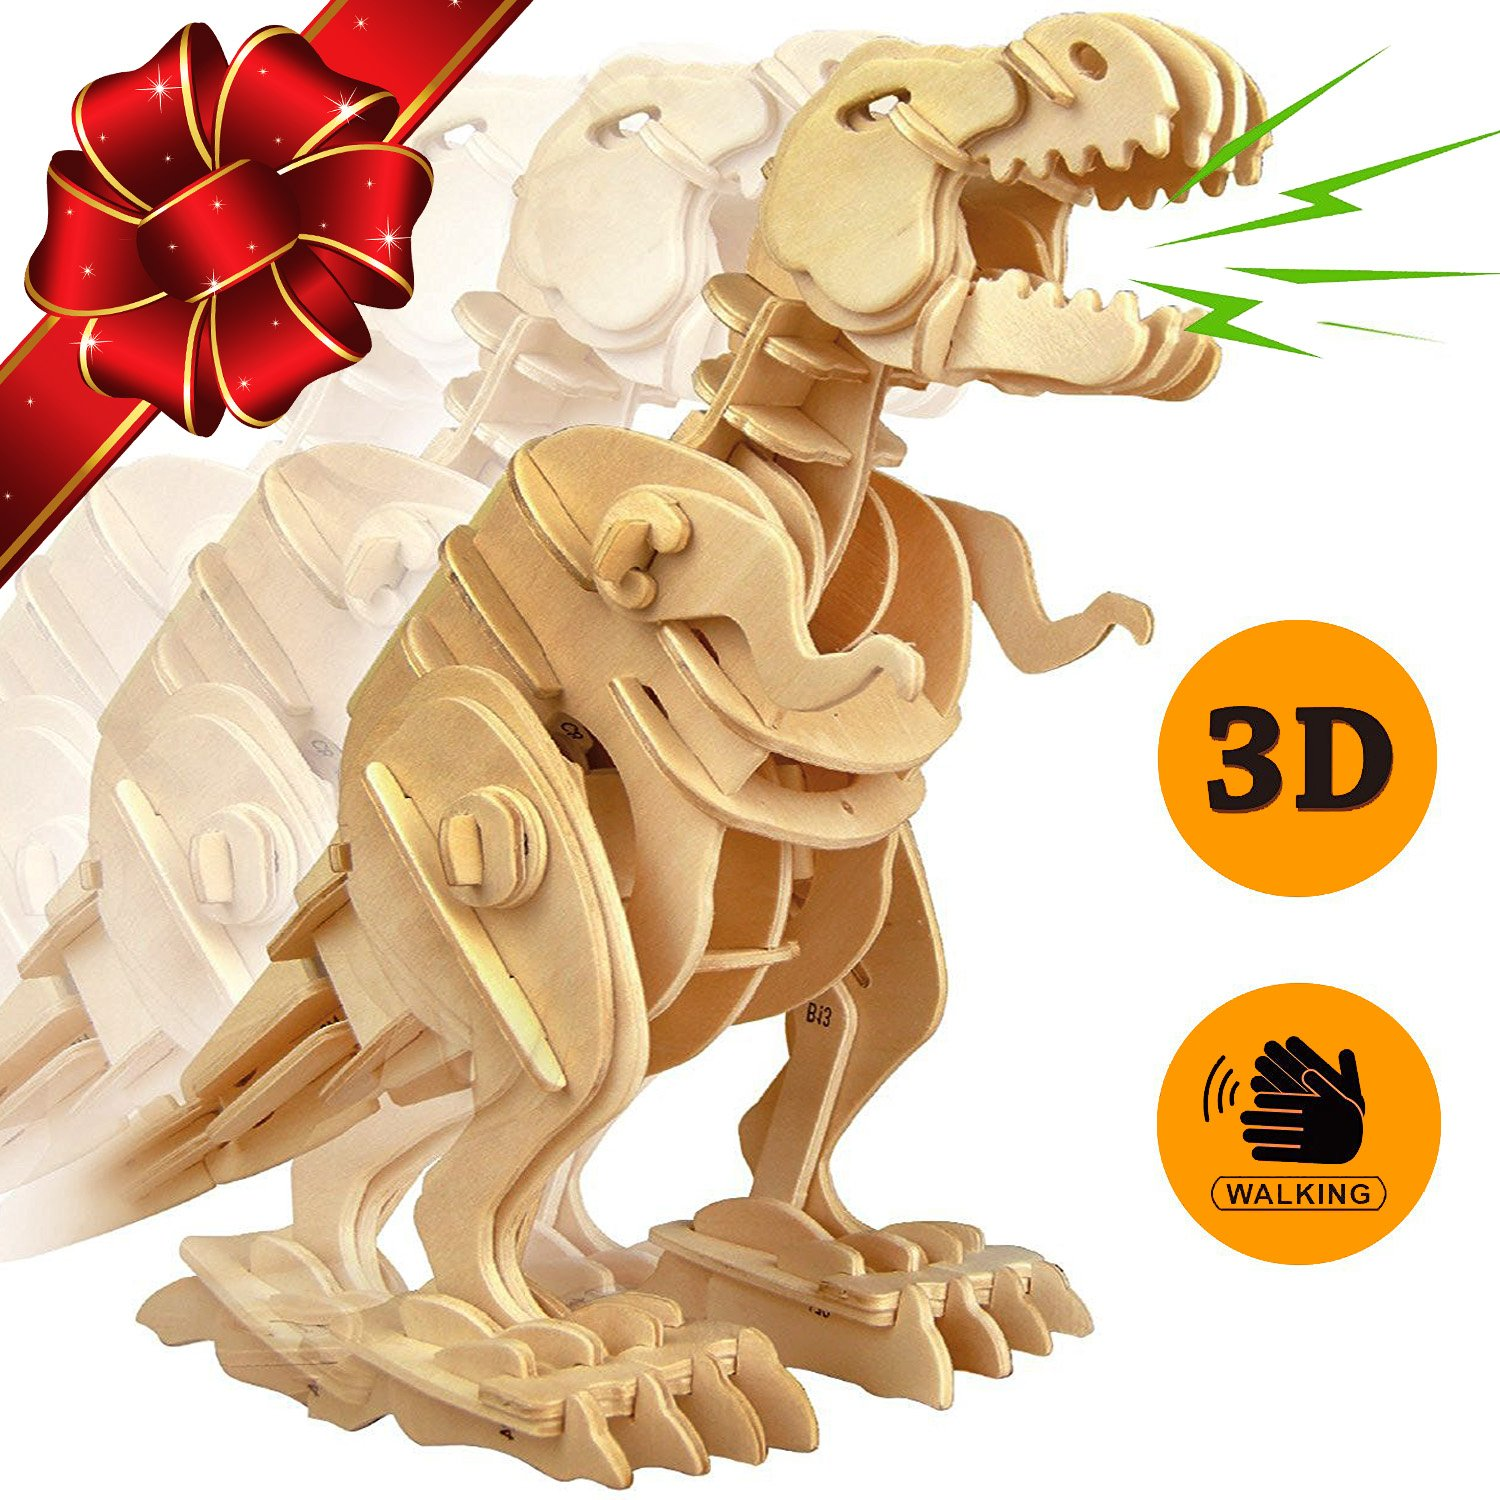 TOYS SALE | Trex Dinosaur 3D Puzzle Walking Wooden Robot T-Rex Toy - Top Gift for Kids - Building Craft Puzzles - Children 6 7 8 9 10 11 12 13 Year Olds Up - Best Educational Gifts for Boys and Girls Wowood